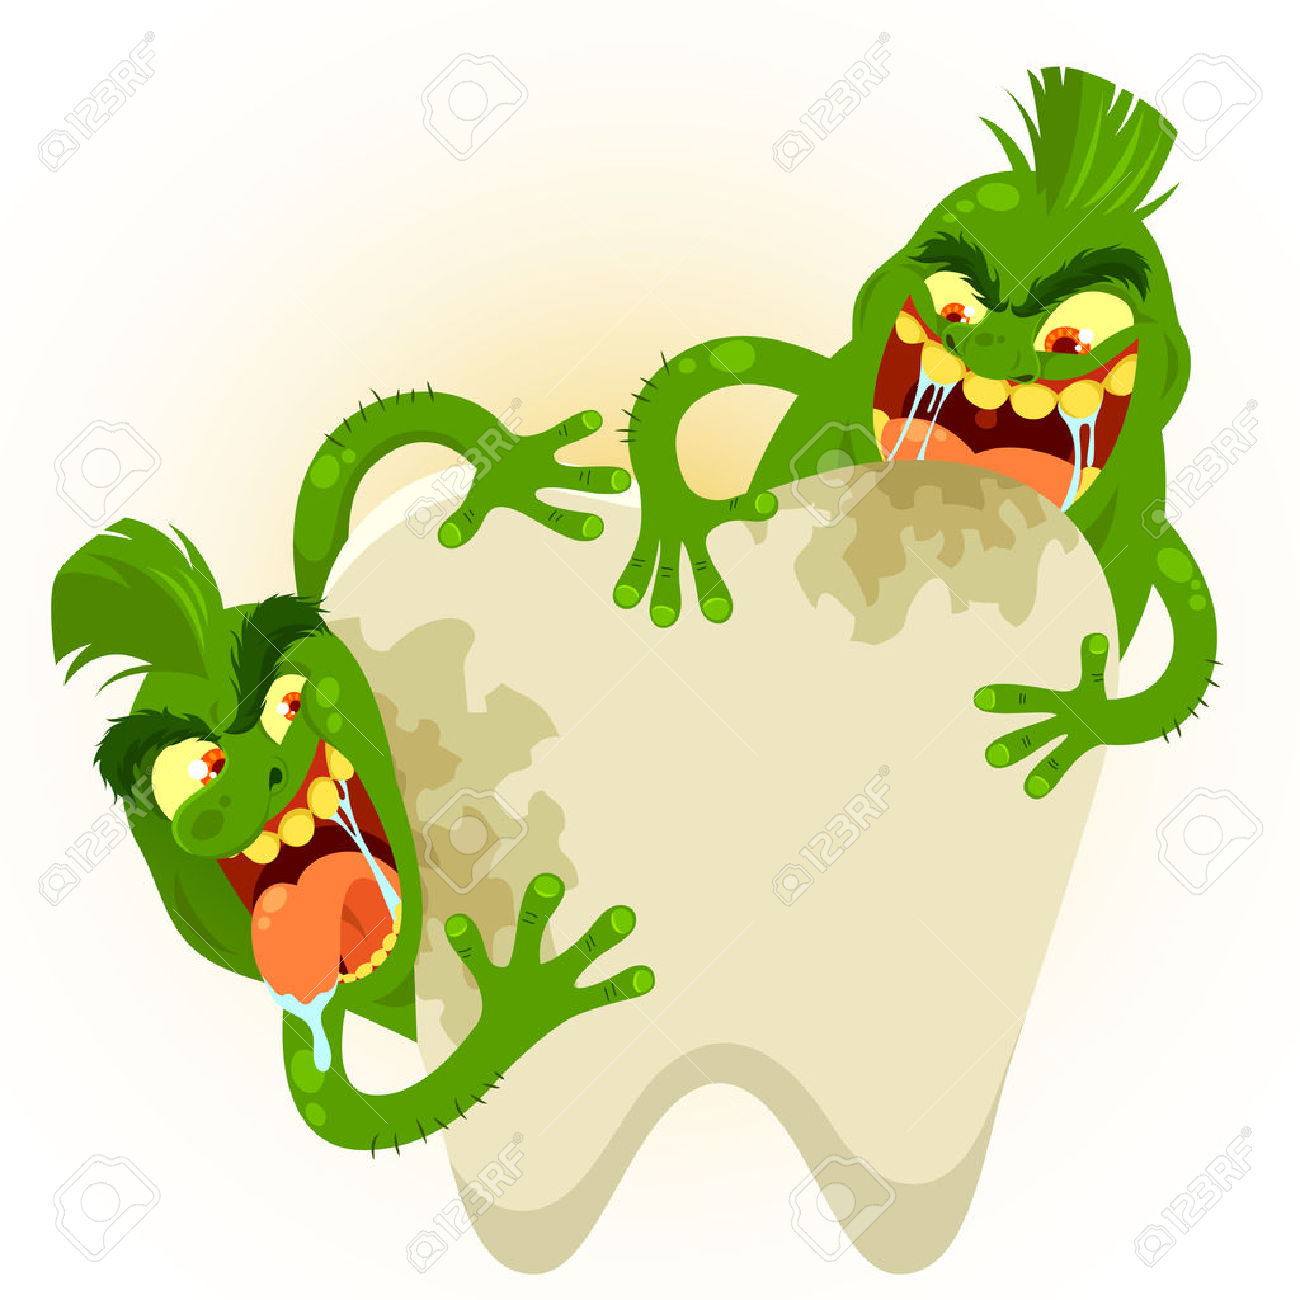 Cartoon Germs Destroying A Tooth Royalty Free Cliparts, Vectors.